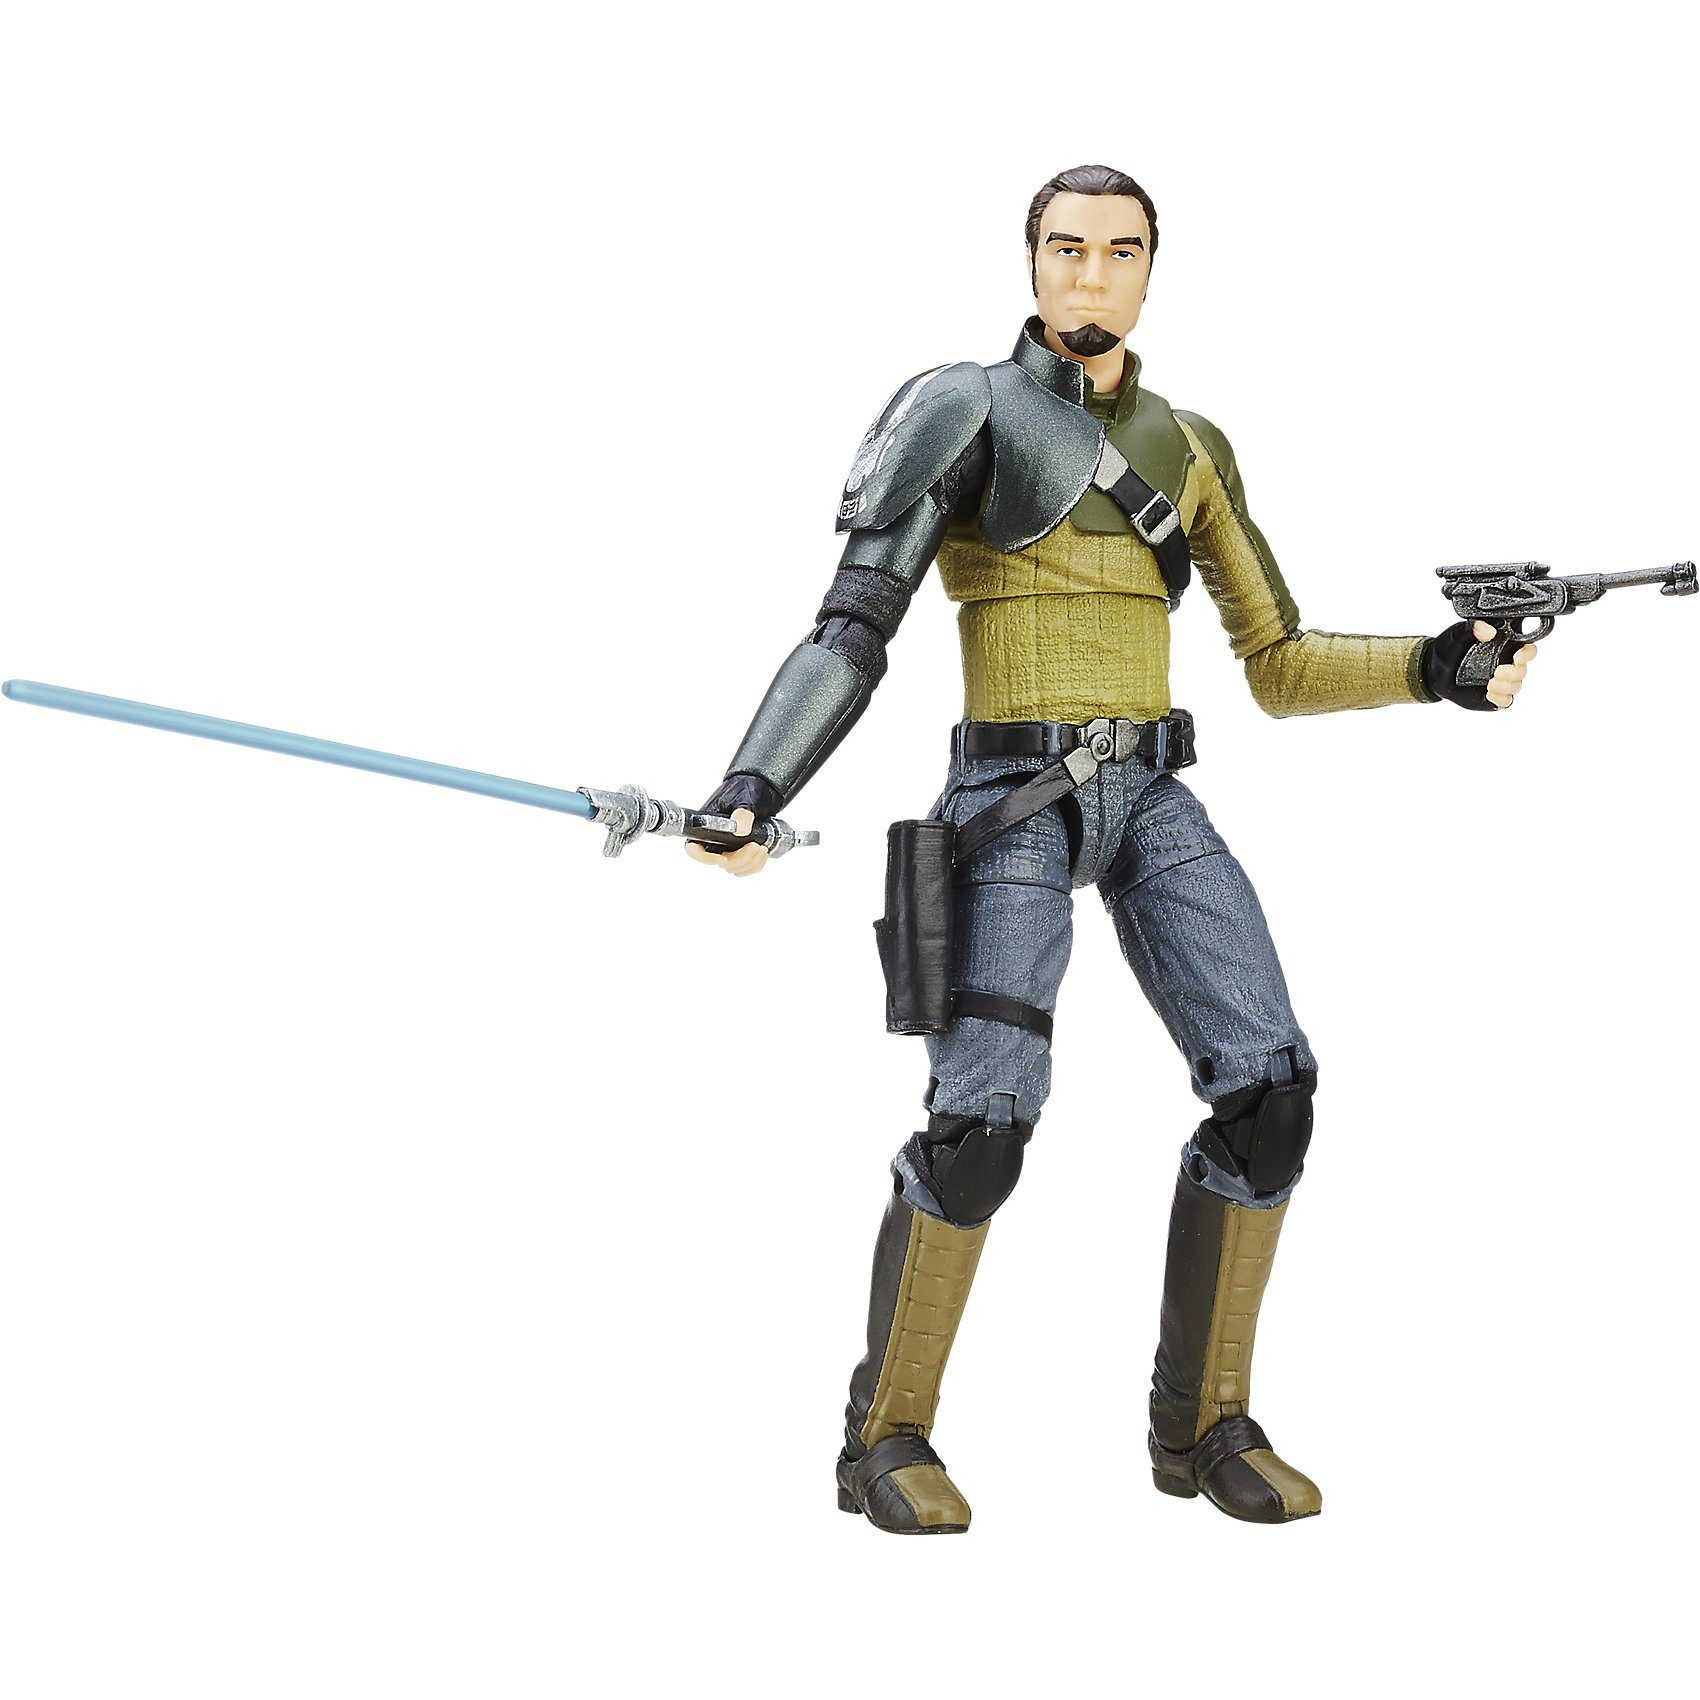 Hasbro Star Wars Rebels The Black Series 15 cm Figur: Kanan Jarrus